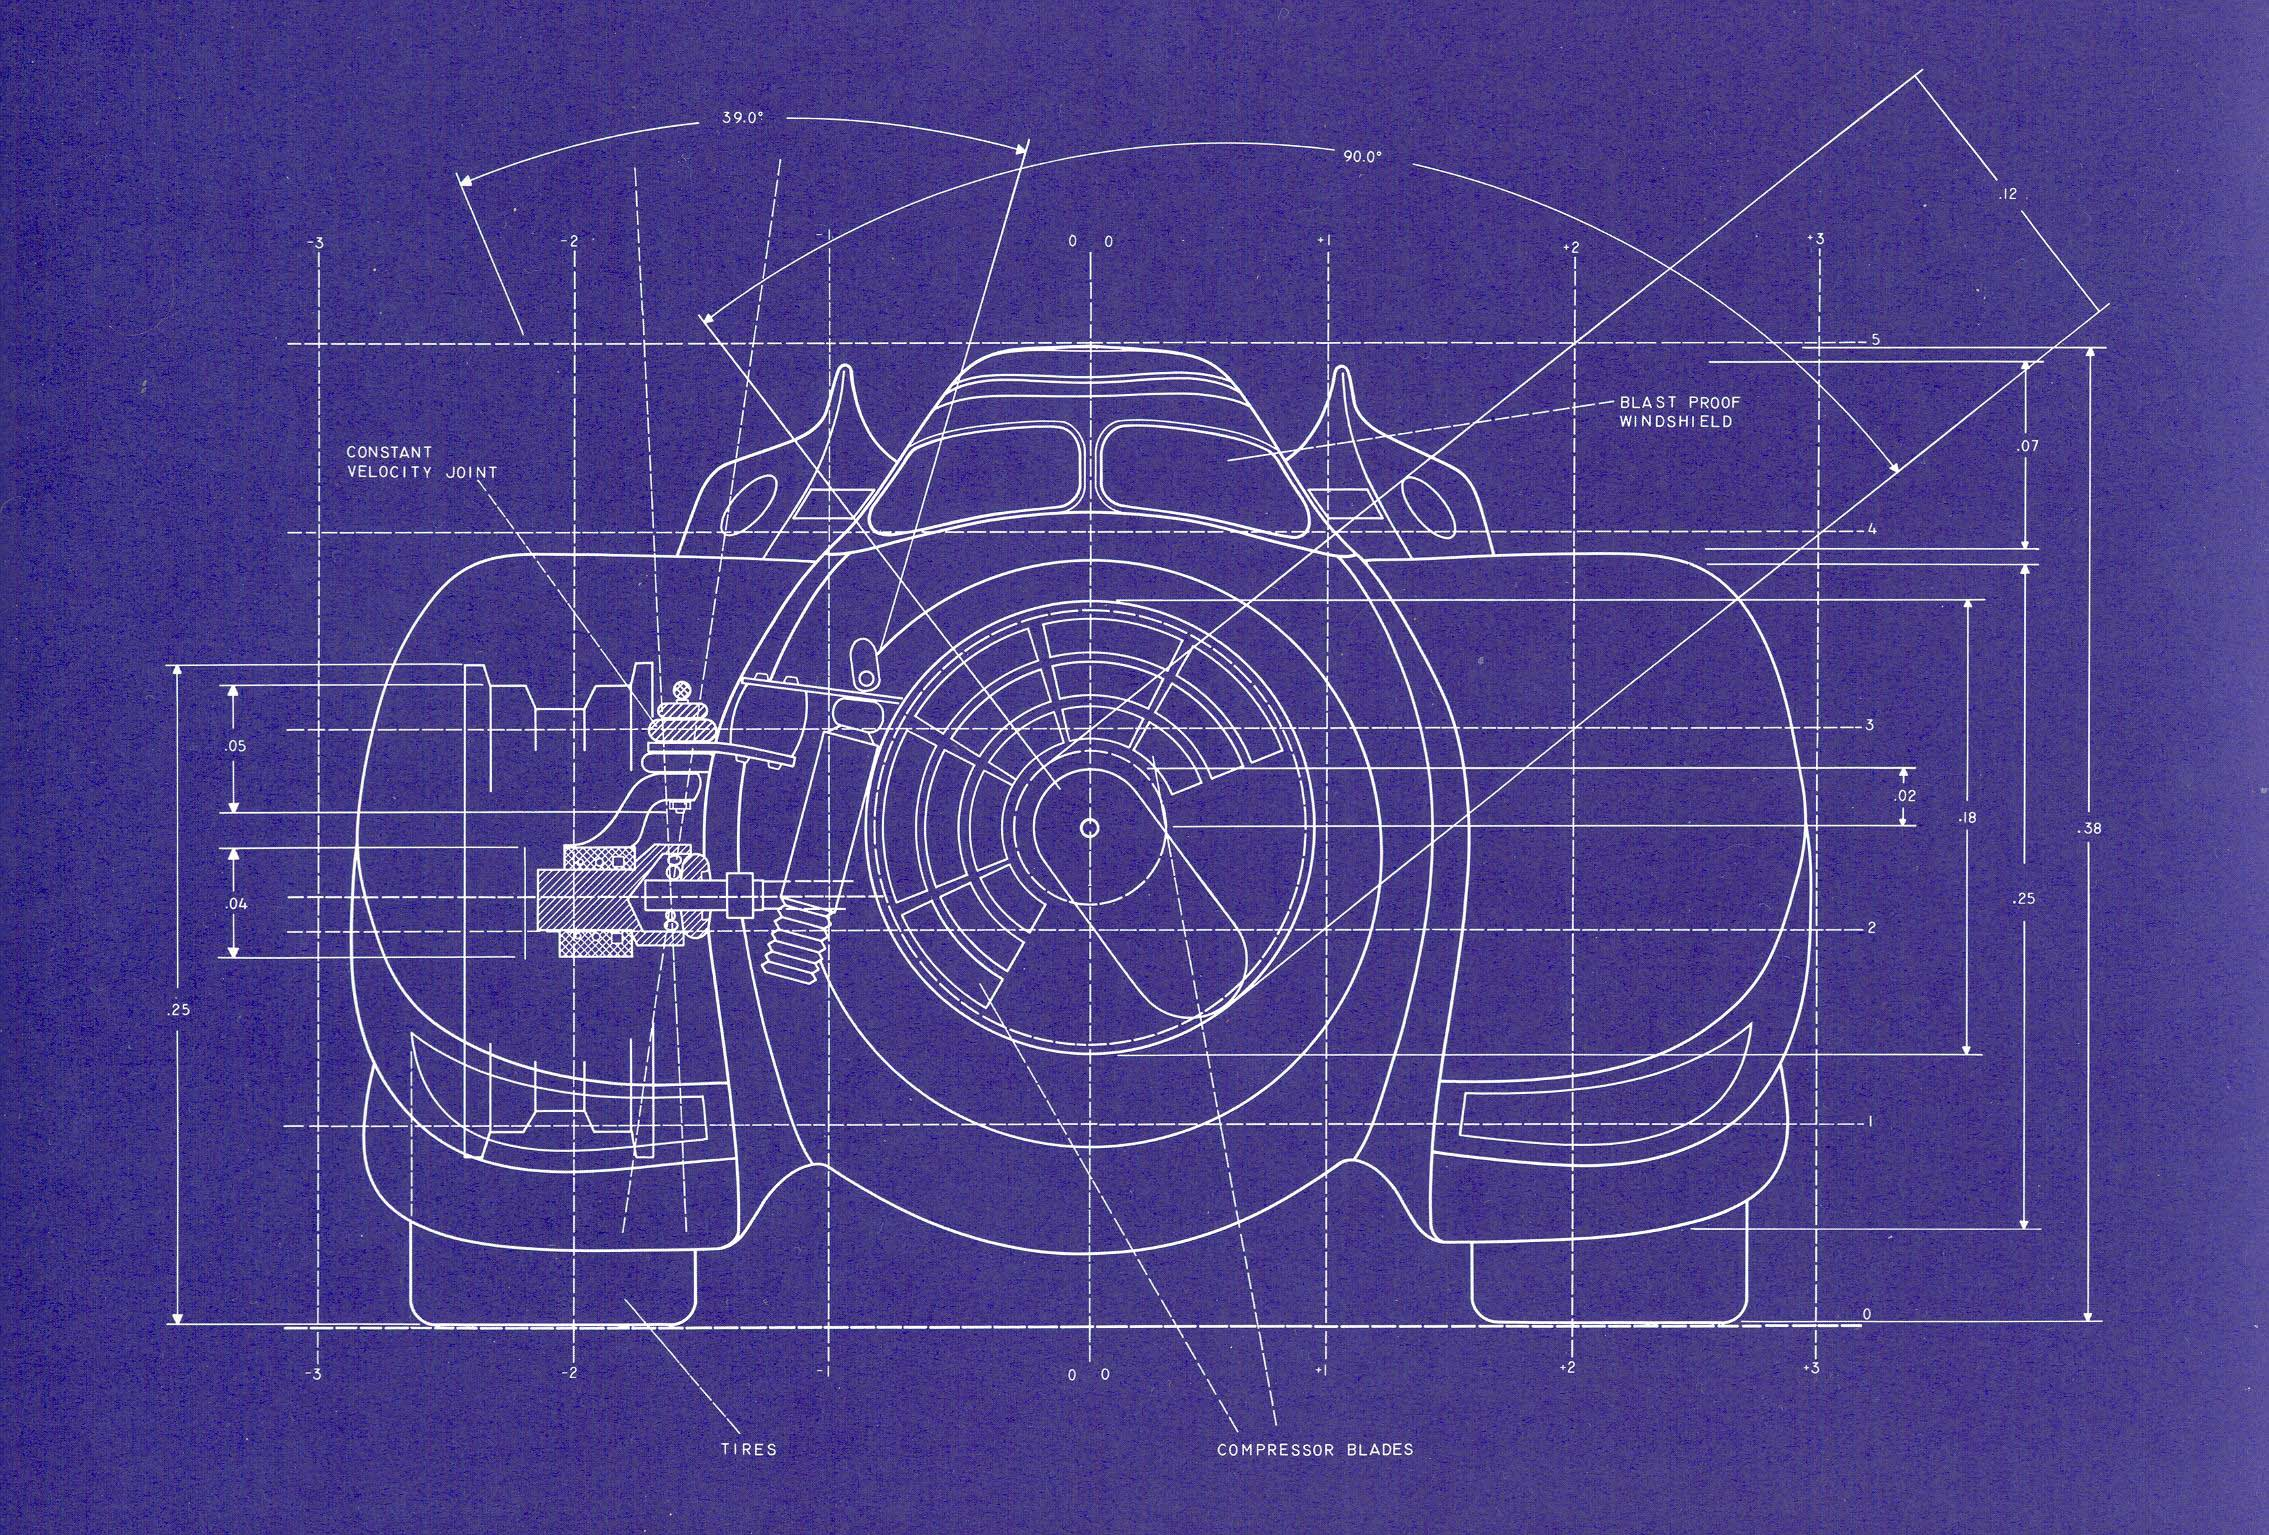 1989 Batmobile Blueprints